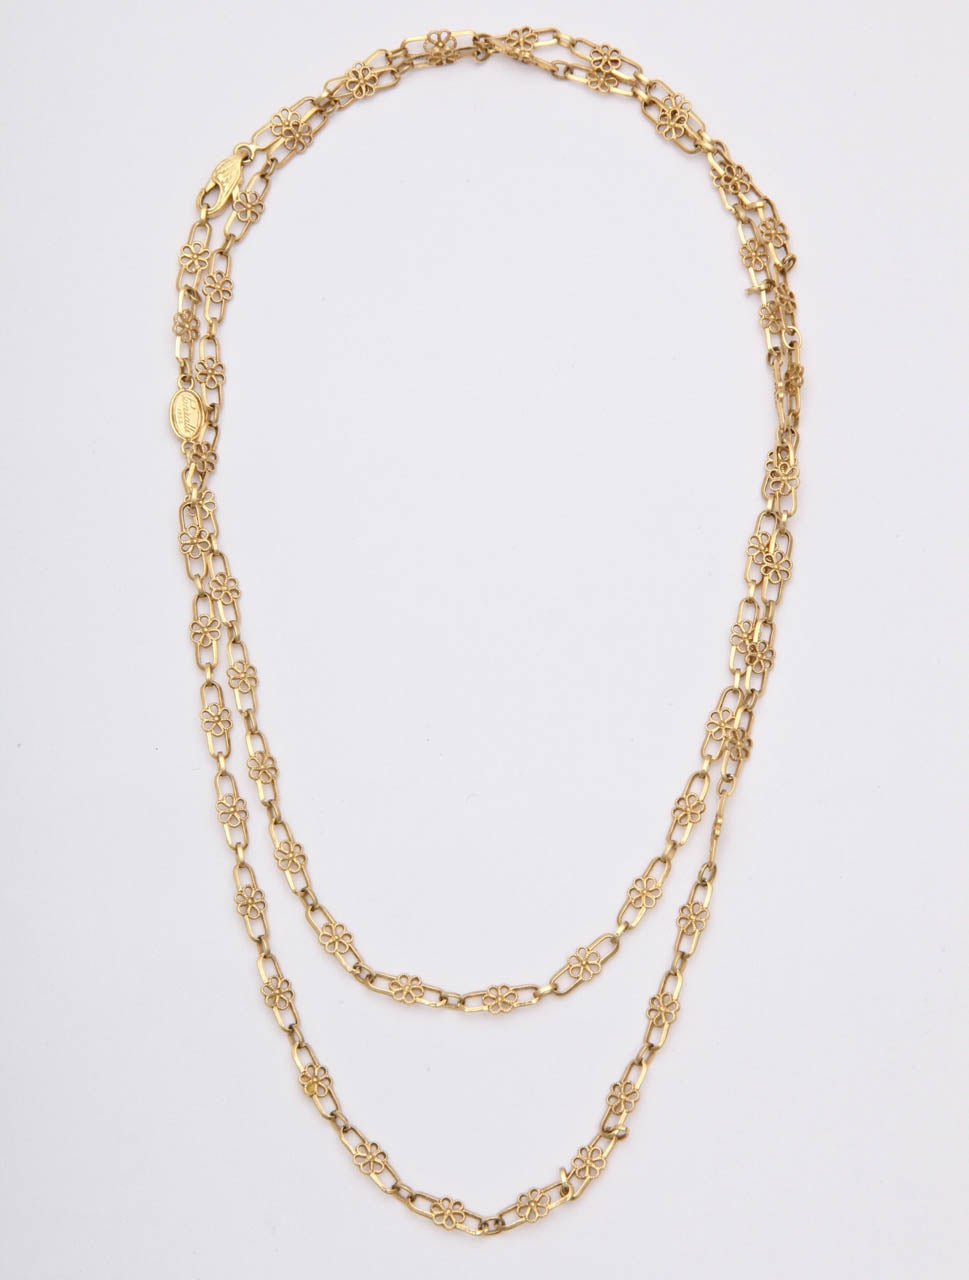 1950's Gold Open Link Delicate Floral Chain Necklace 2